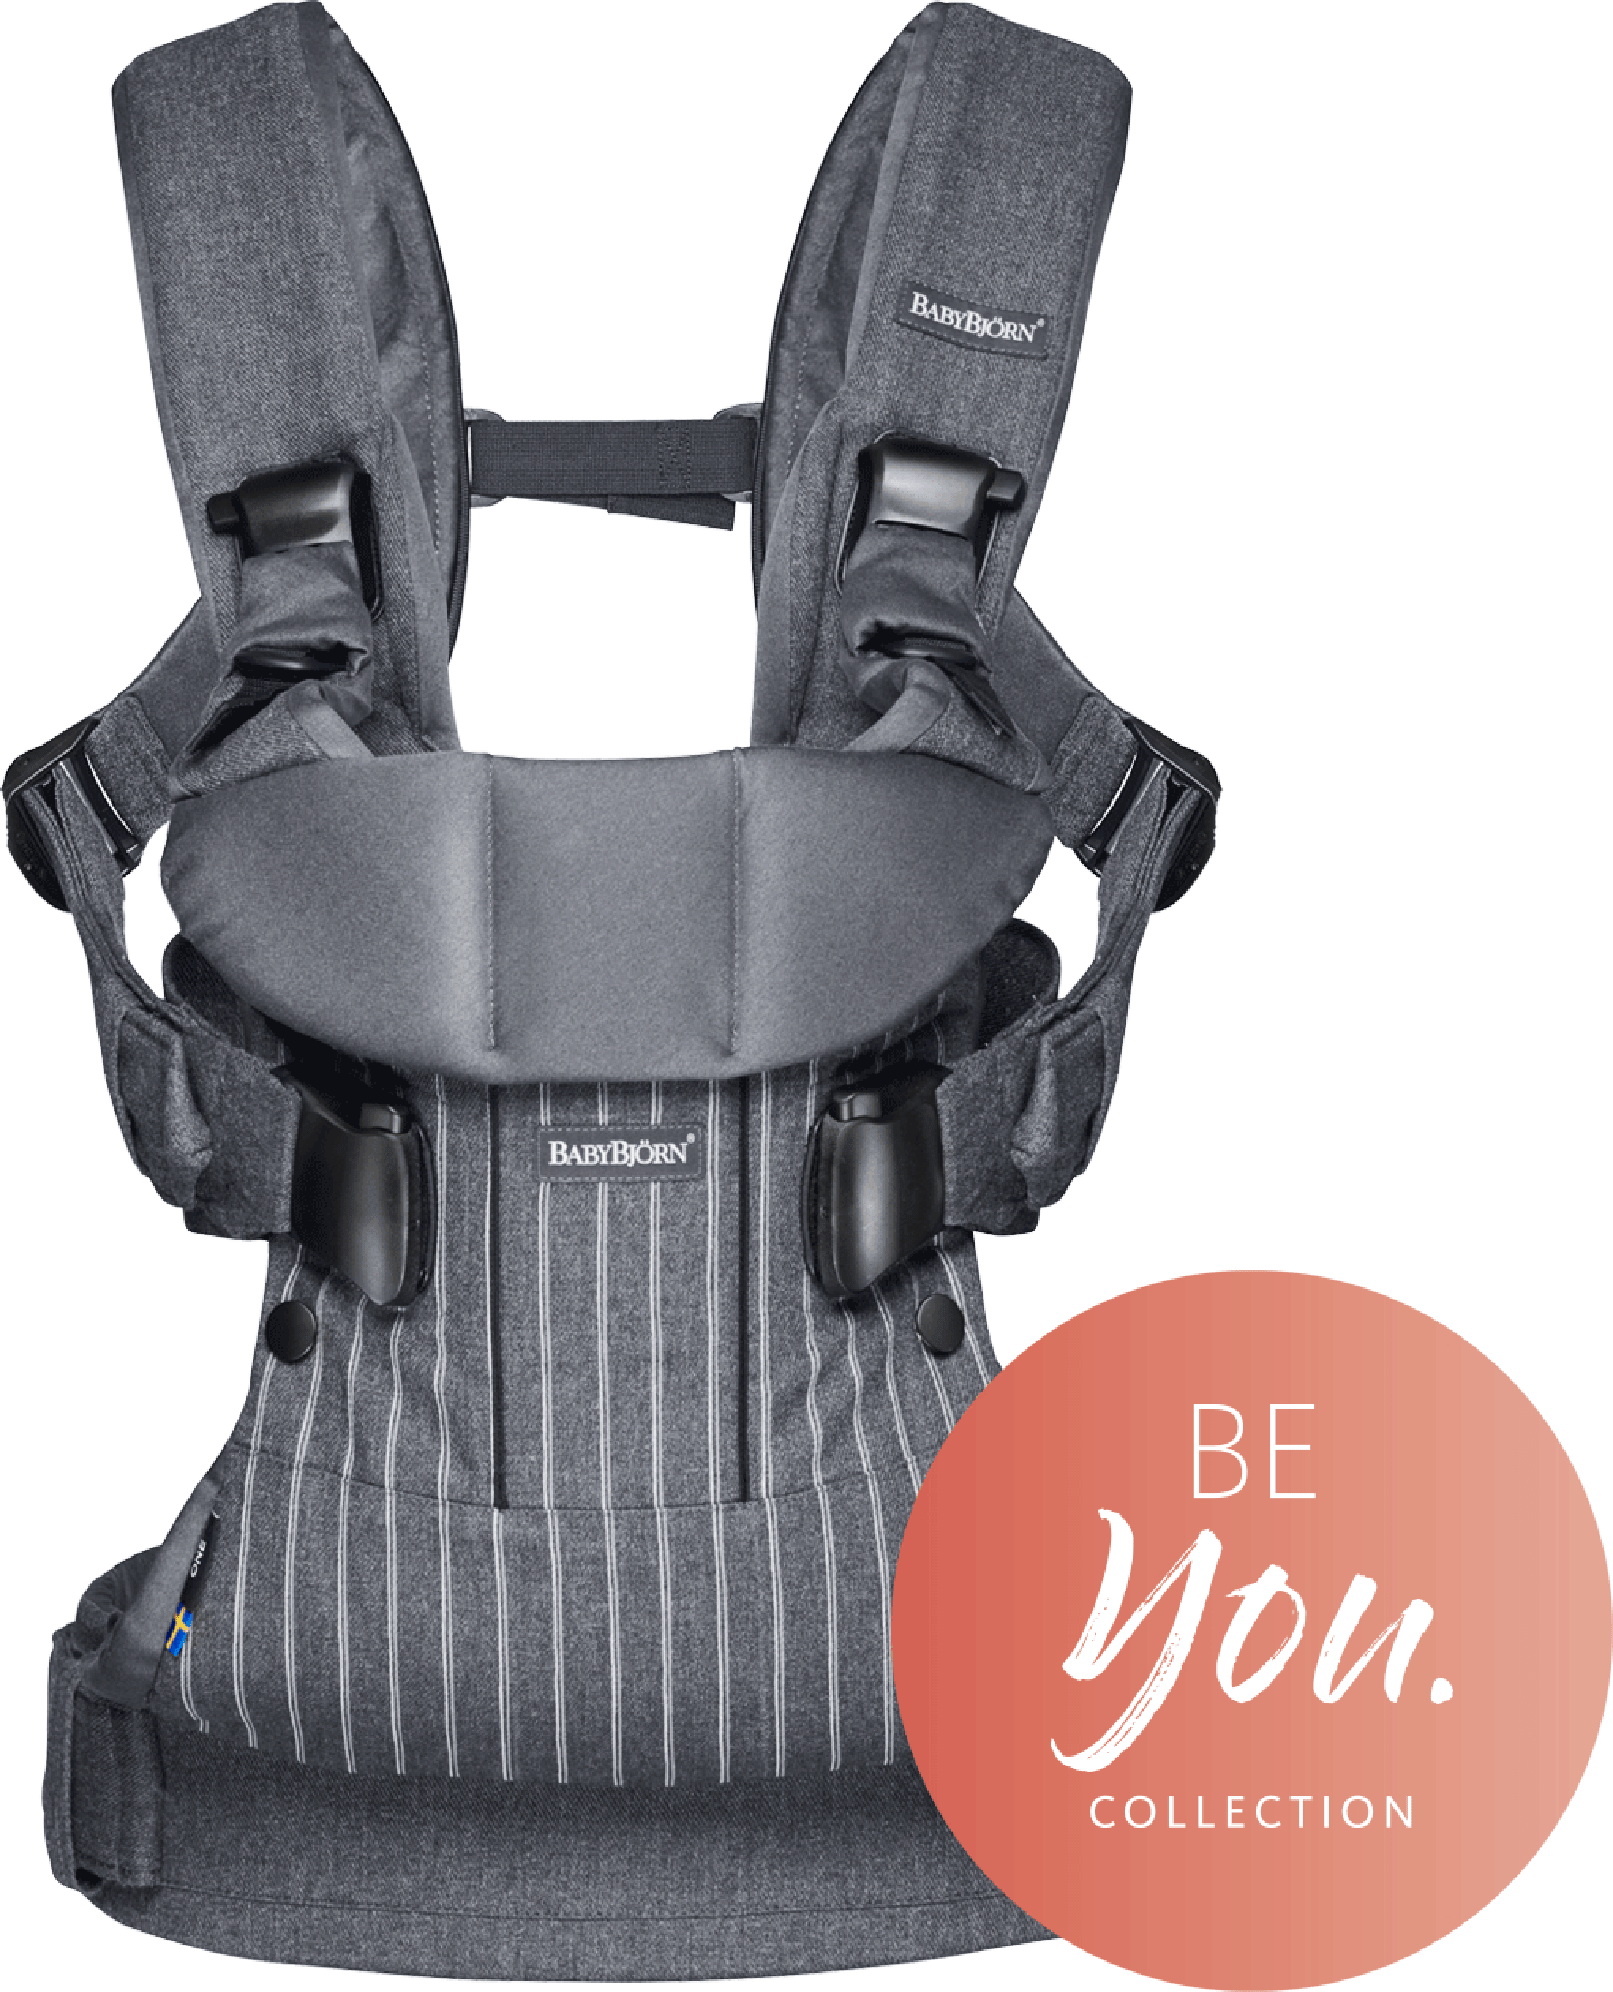 BABYBJÖRN Baby Carrier One in pinstripe grey cotton mix, an ergonomic baby carrier perfect for newborn up to 3 years.